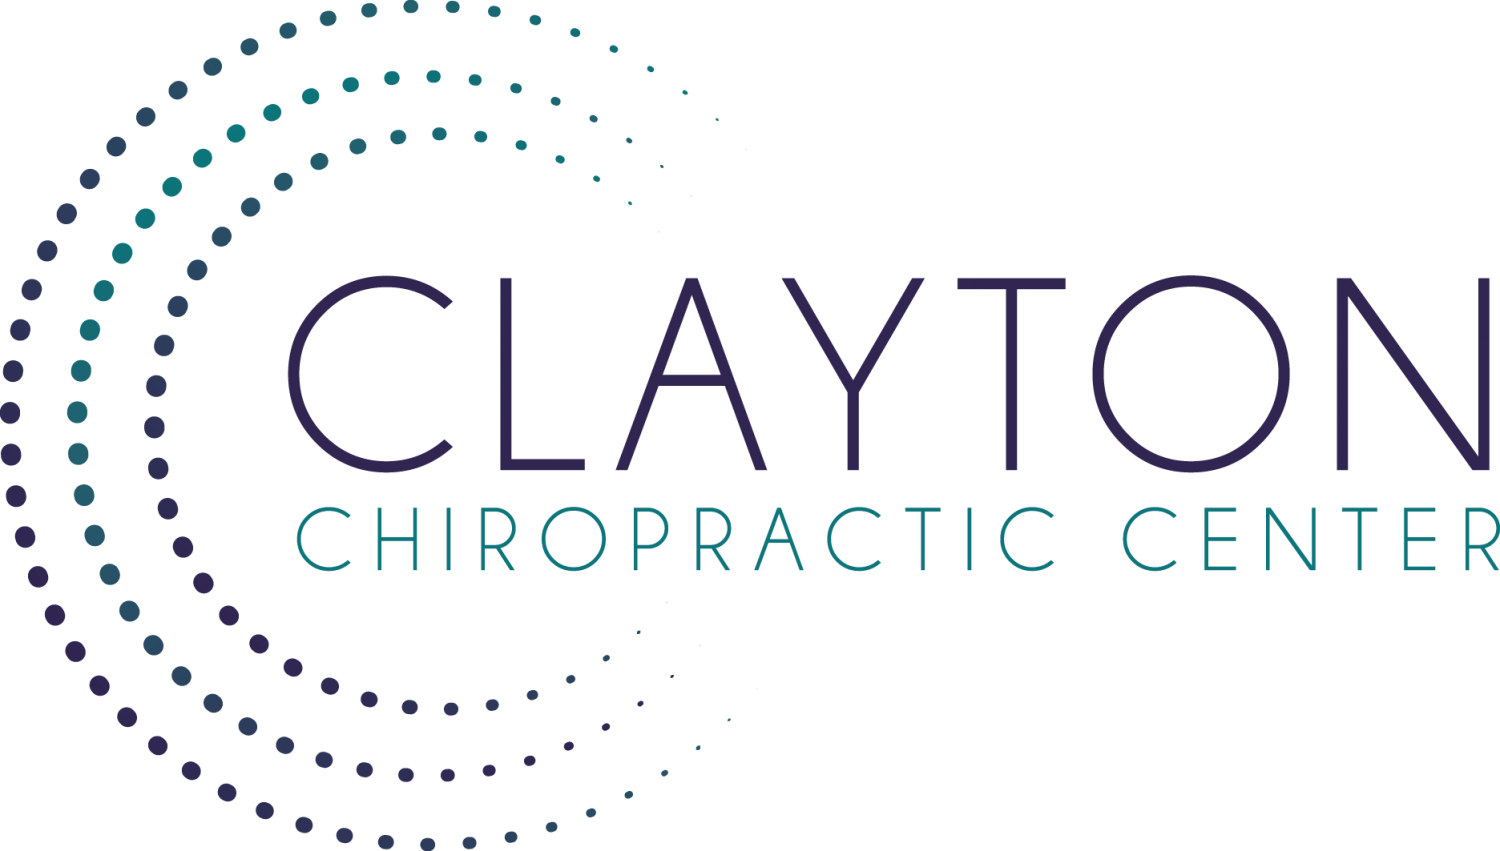 Clayton Chiropractic Center St Louis Chiropractor And